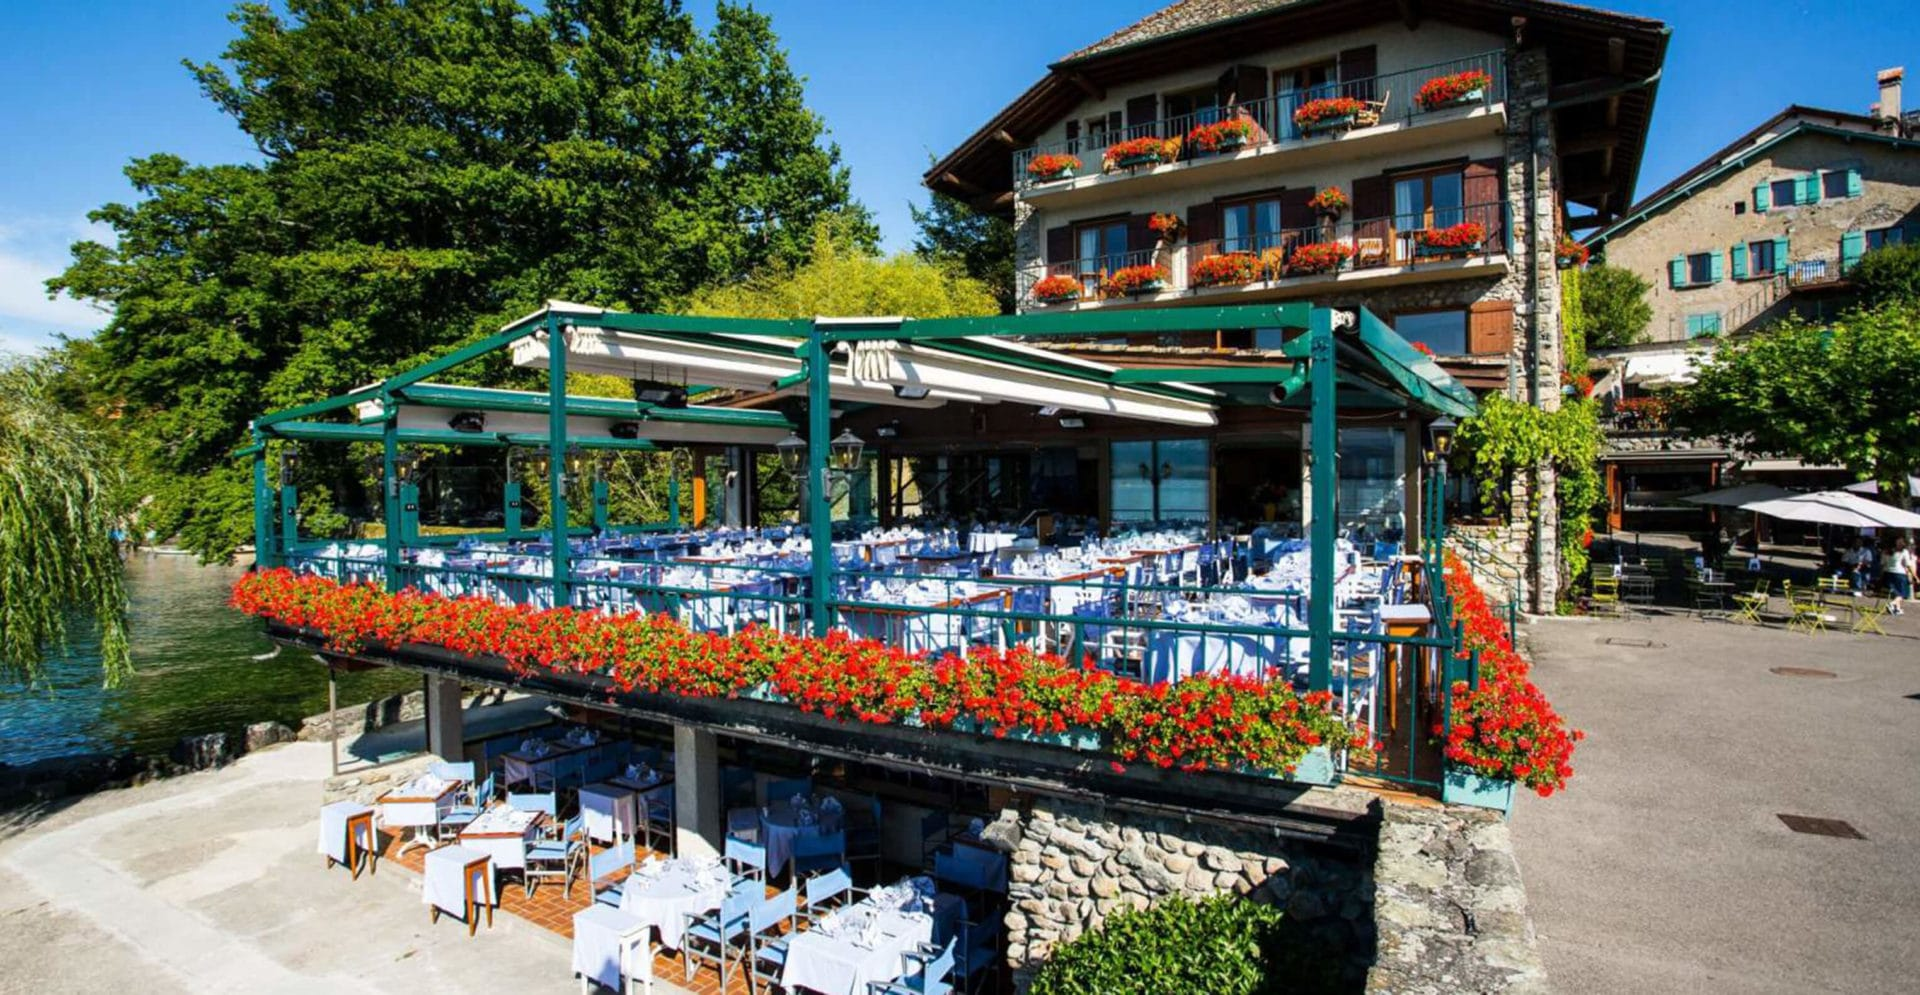 restaurant yvoire | Yvoire | France